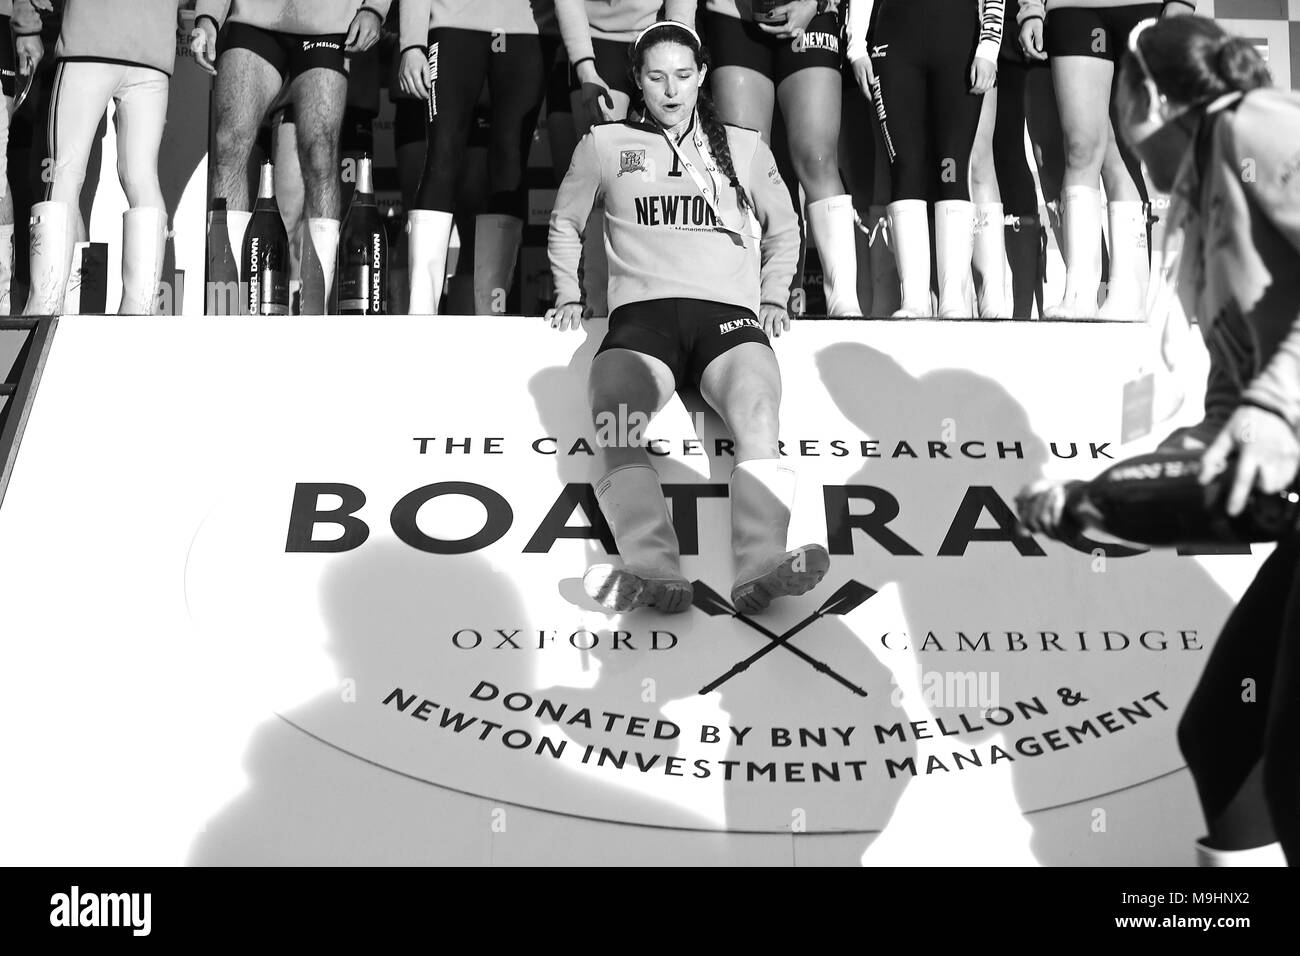 The cancer reasearch Boat race 2018 - Stock Image